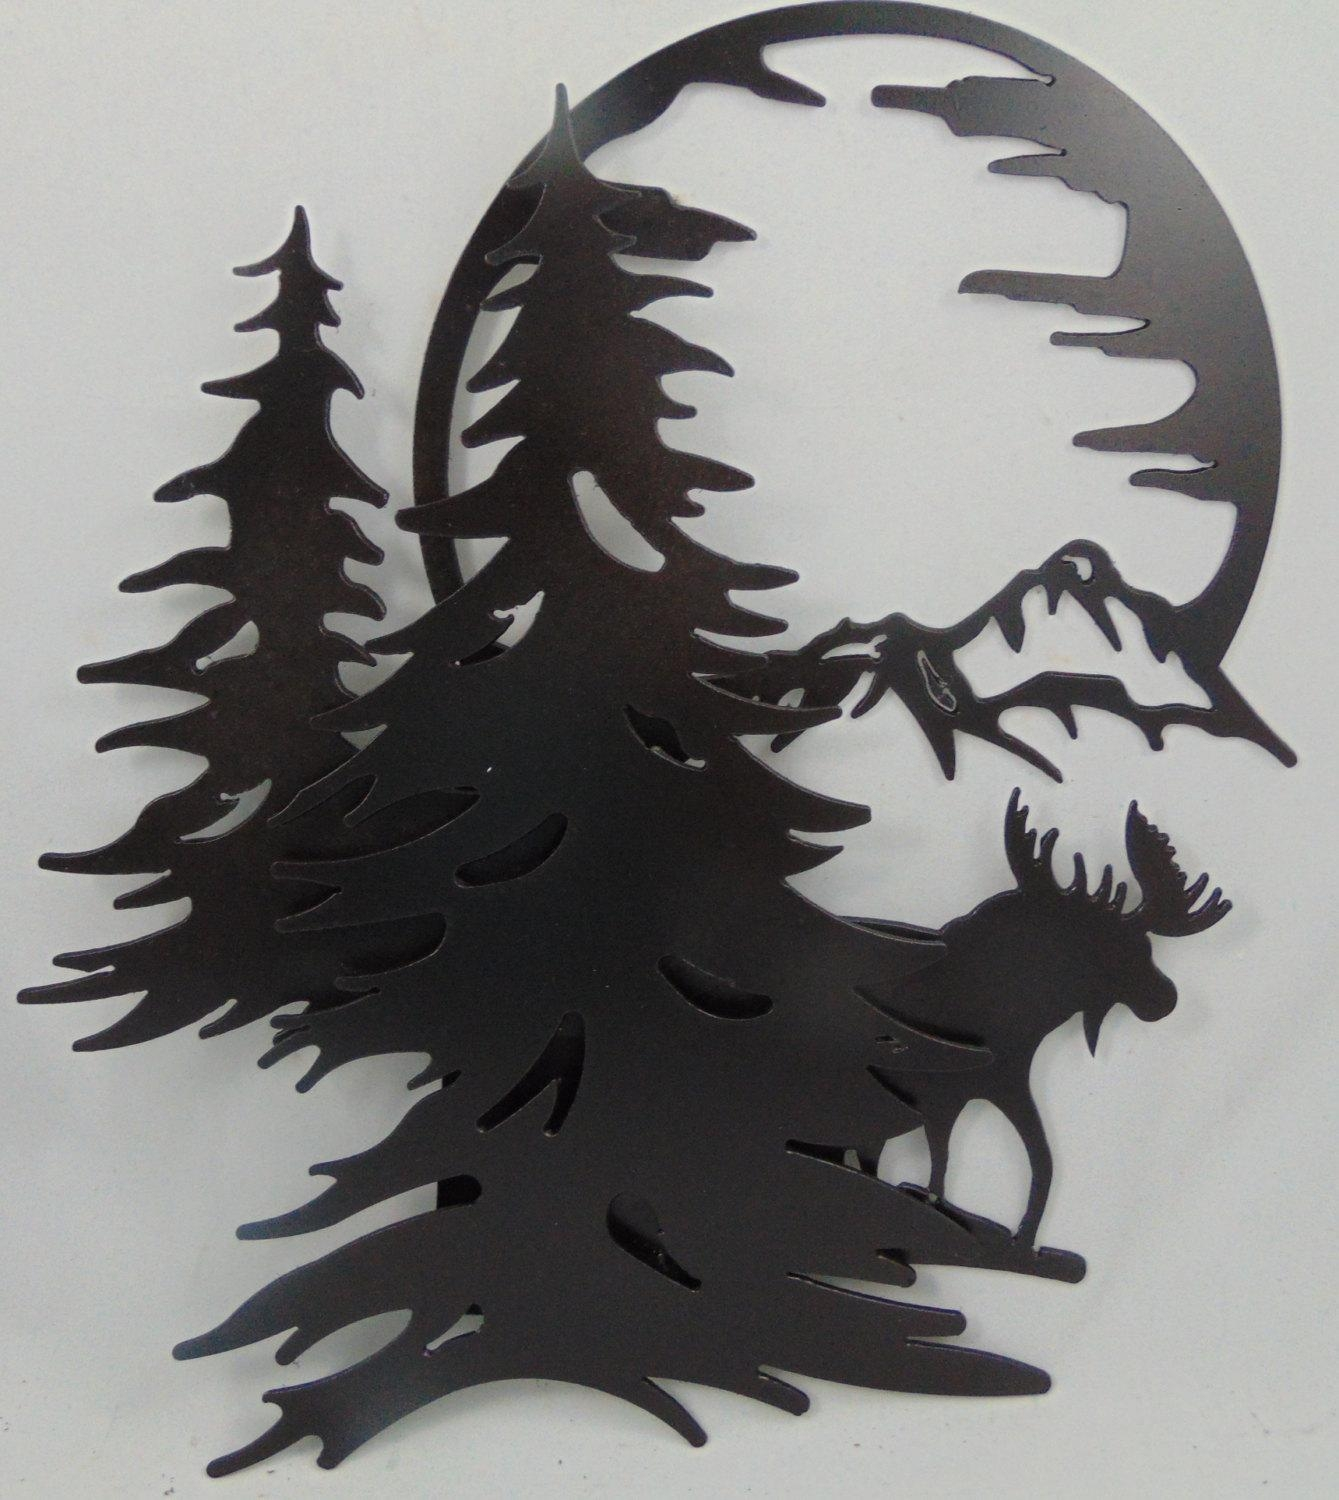 3 D Metal Moose Mountains Trees Moon Scene Wall Hanging / Intended For Mountain Scene Metal Wall Art (View 7 of 20)